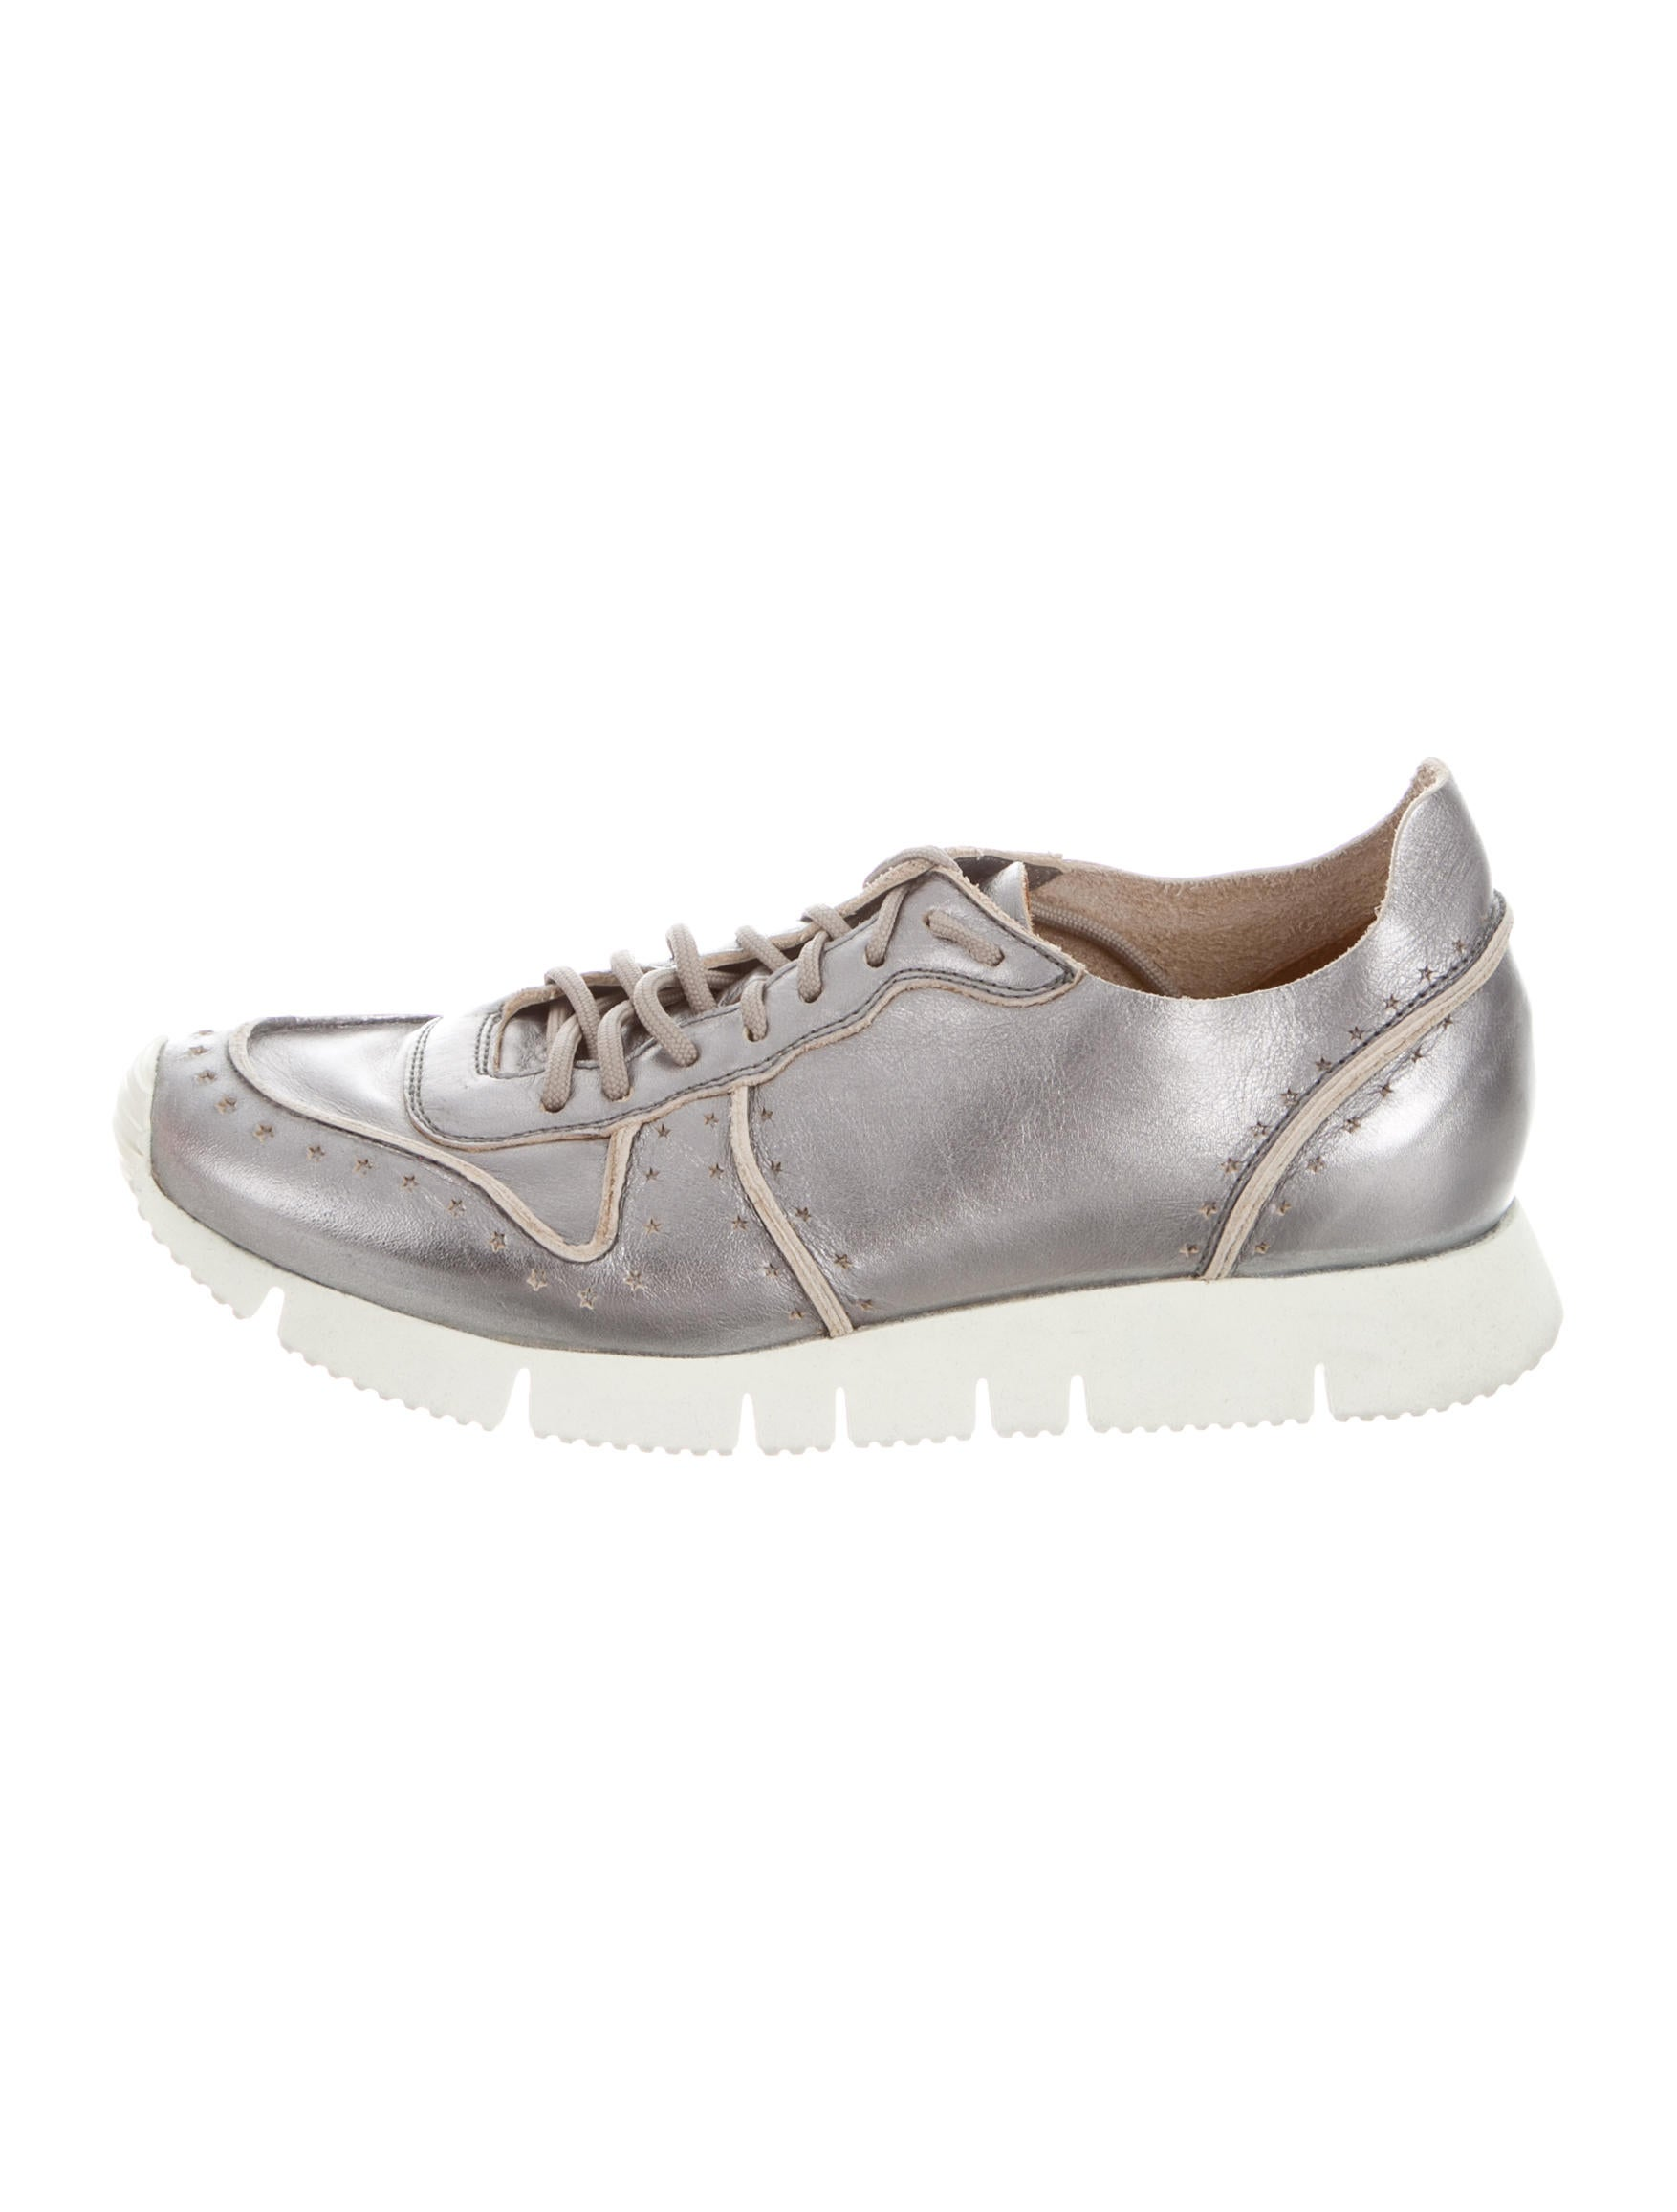 Buttero Metallic Running Sneakers w/ Tags discount sast discounts online buy cheap choice visit new for sale YtdpYezGV